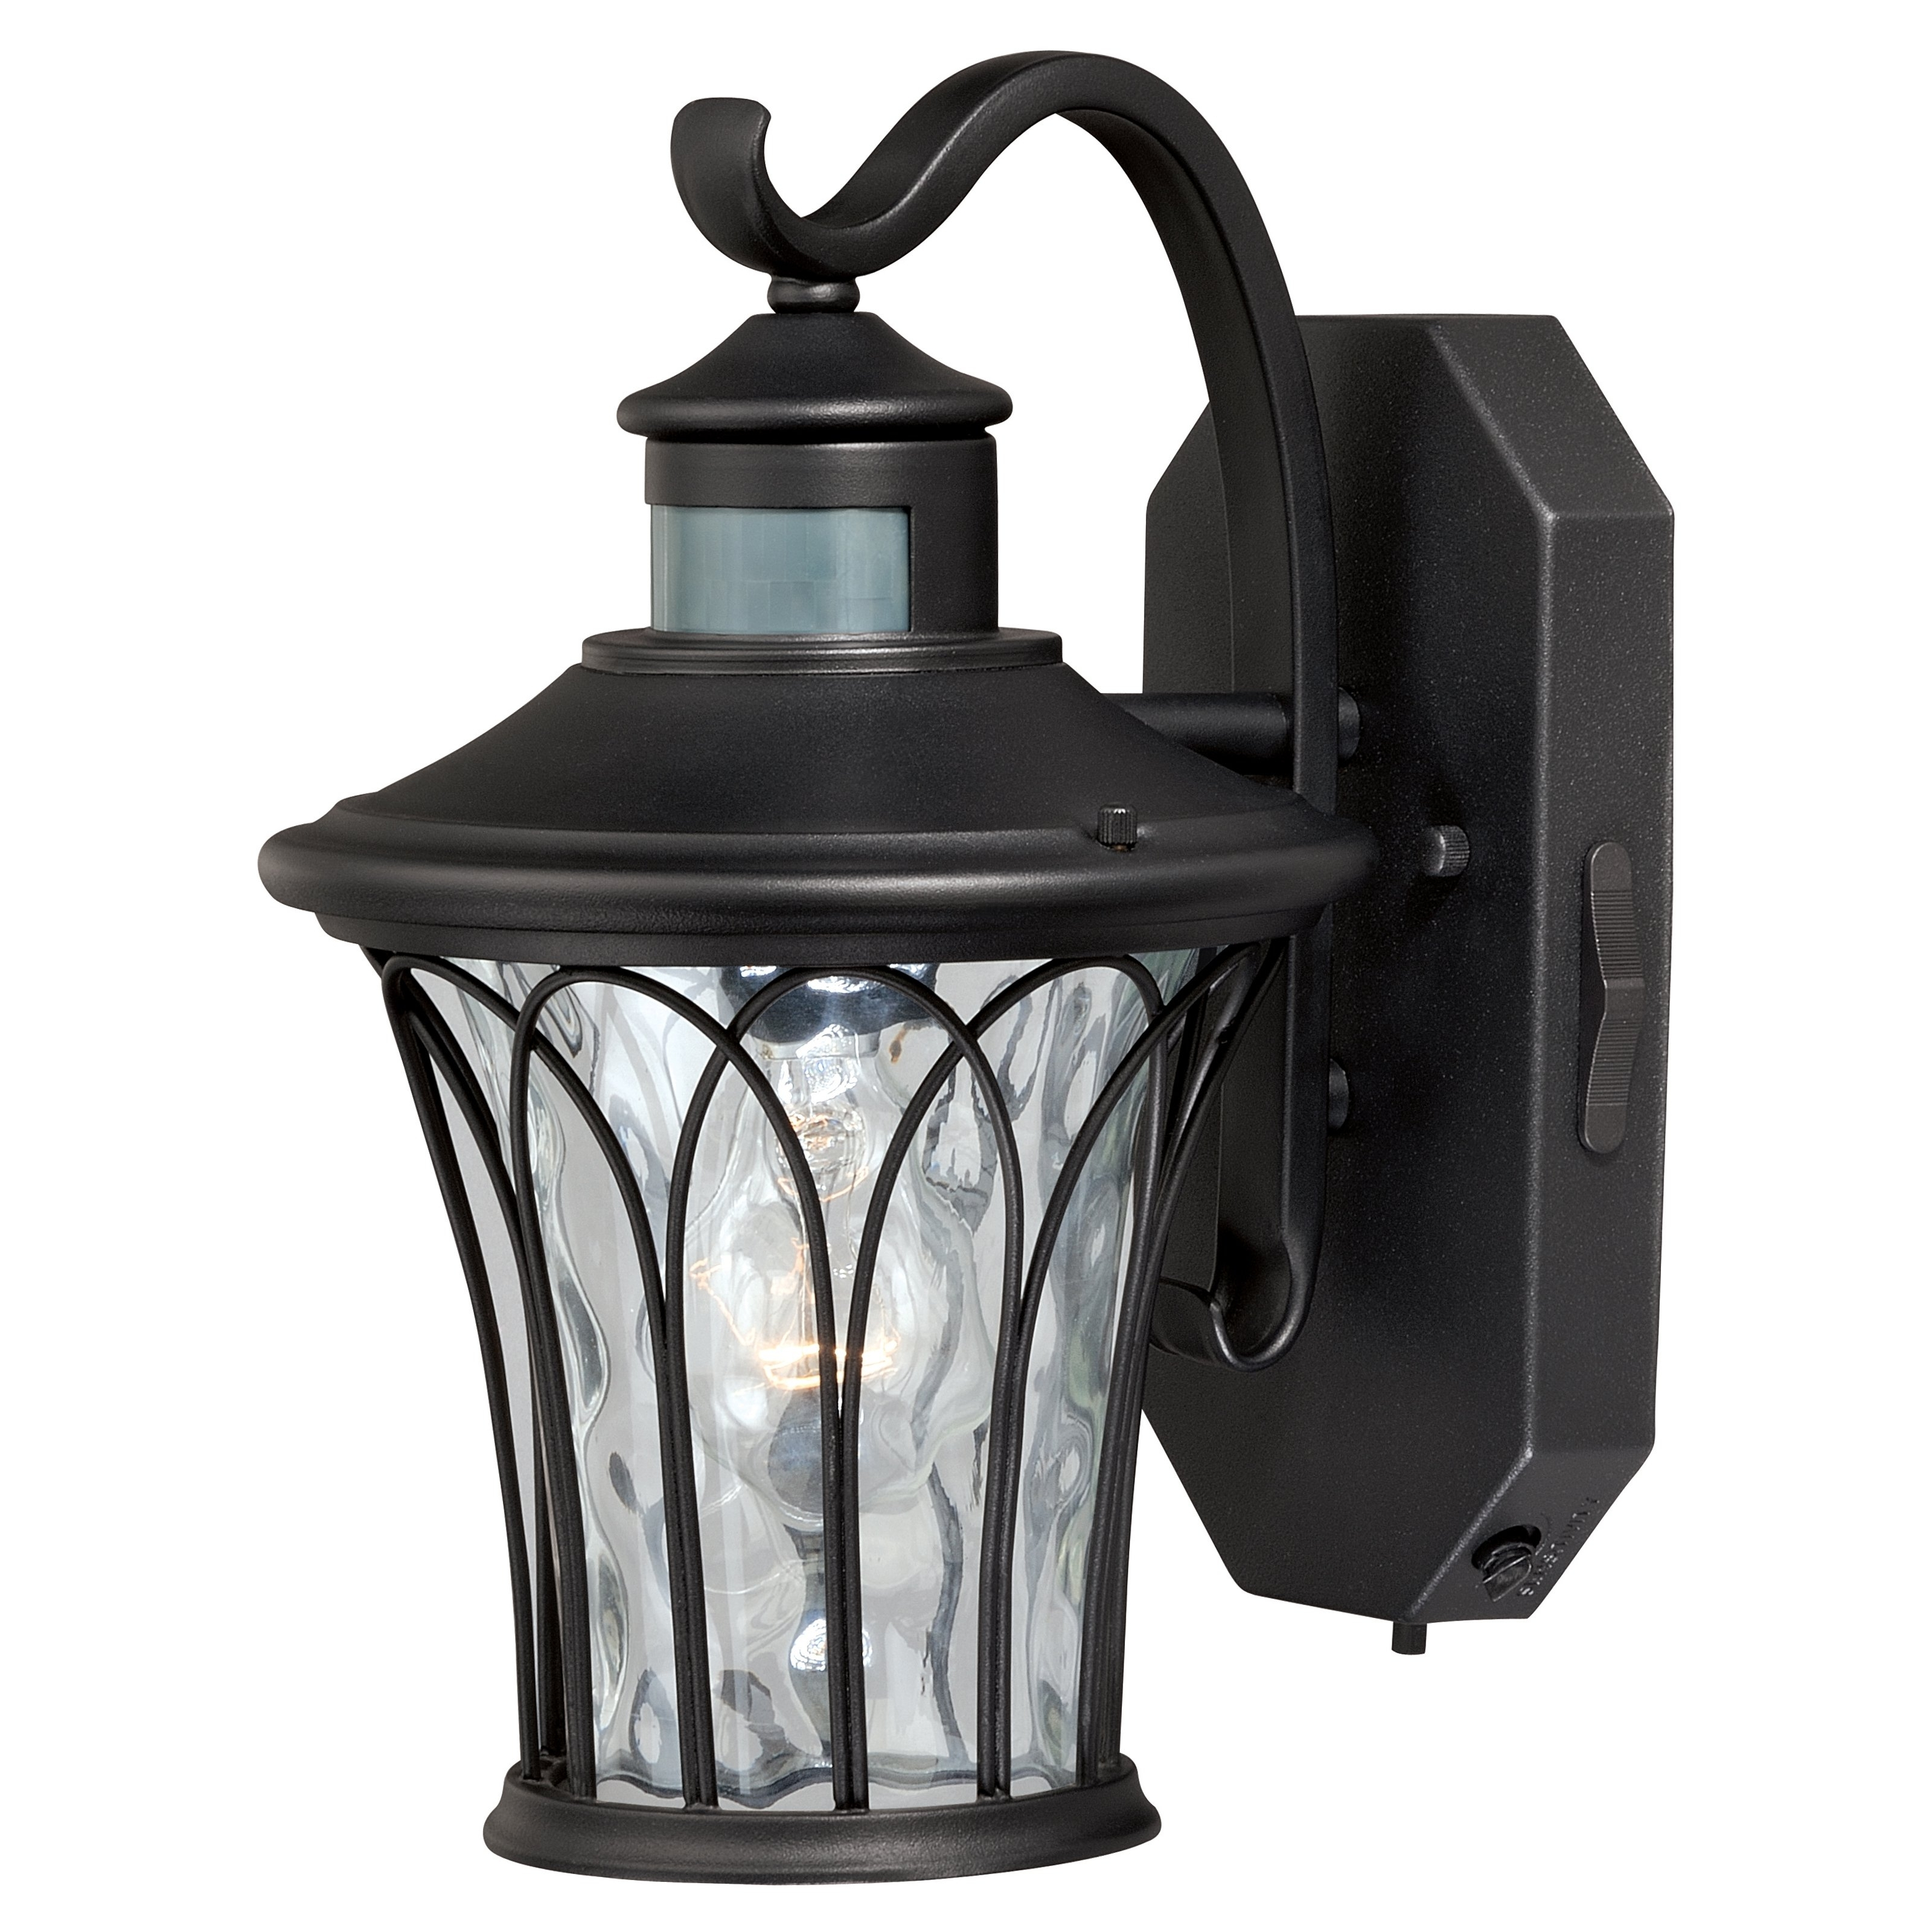 Adelaide Outdoor Wall Lighting Throughout 2019 Furniture : Decorative Outdoor Motion Sensor Light Images Lights (View 6 of 20)